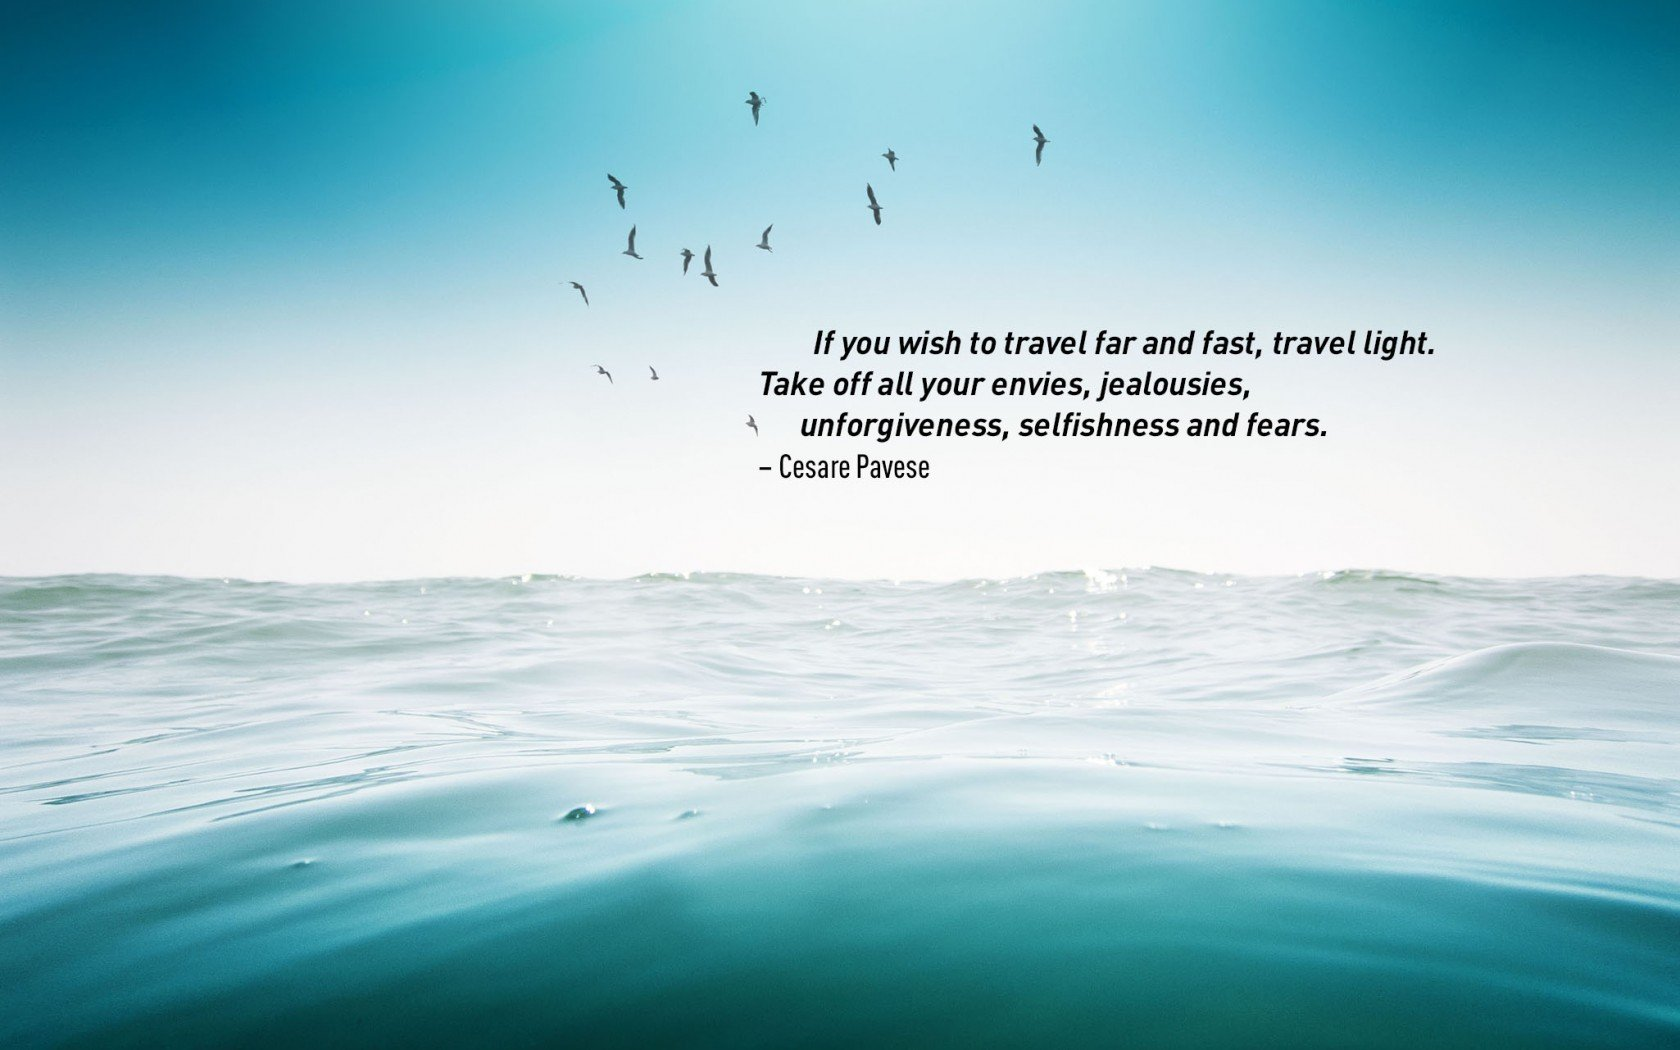 Cruise Vacation Quotes Quotesgram: Travel Quotes. QuotesGram